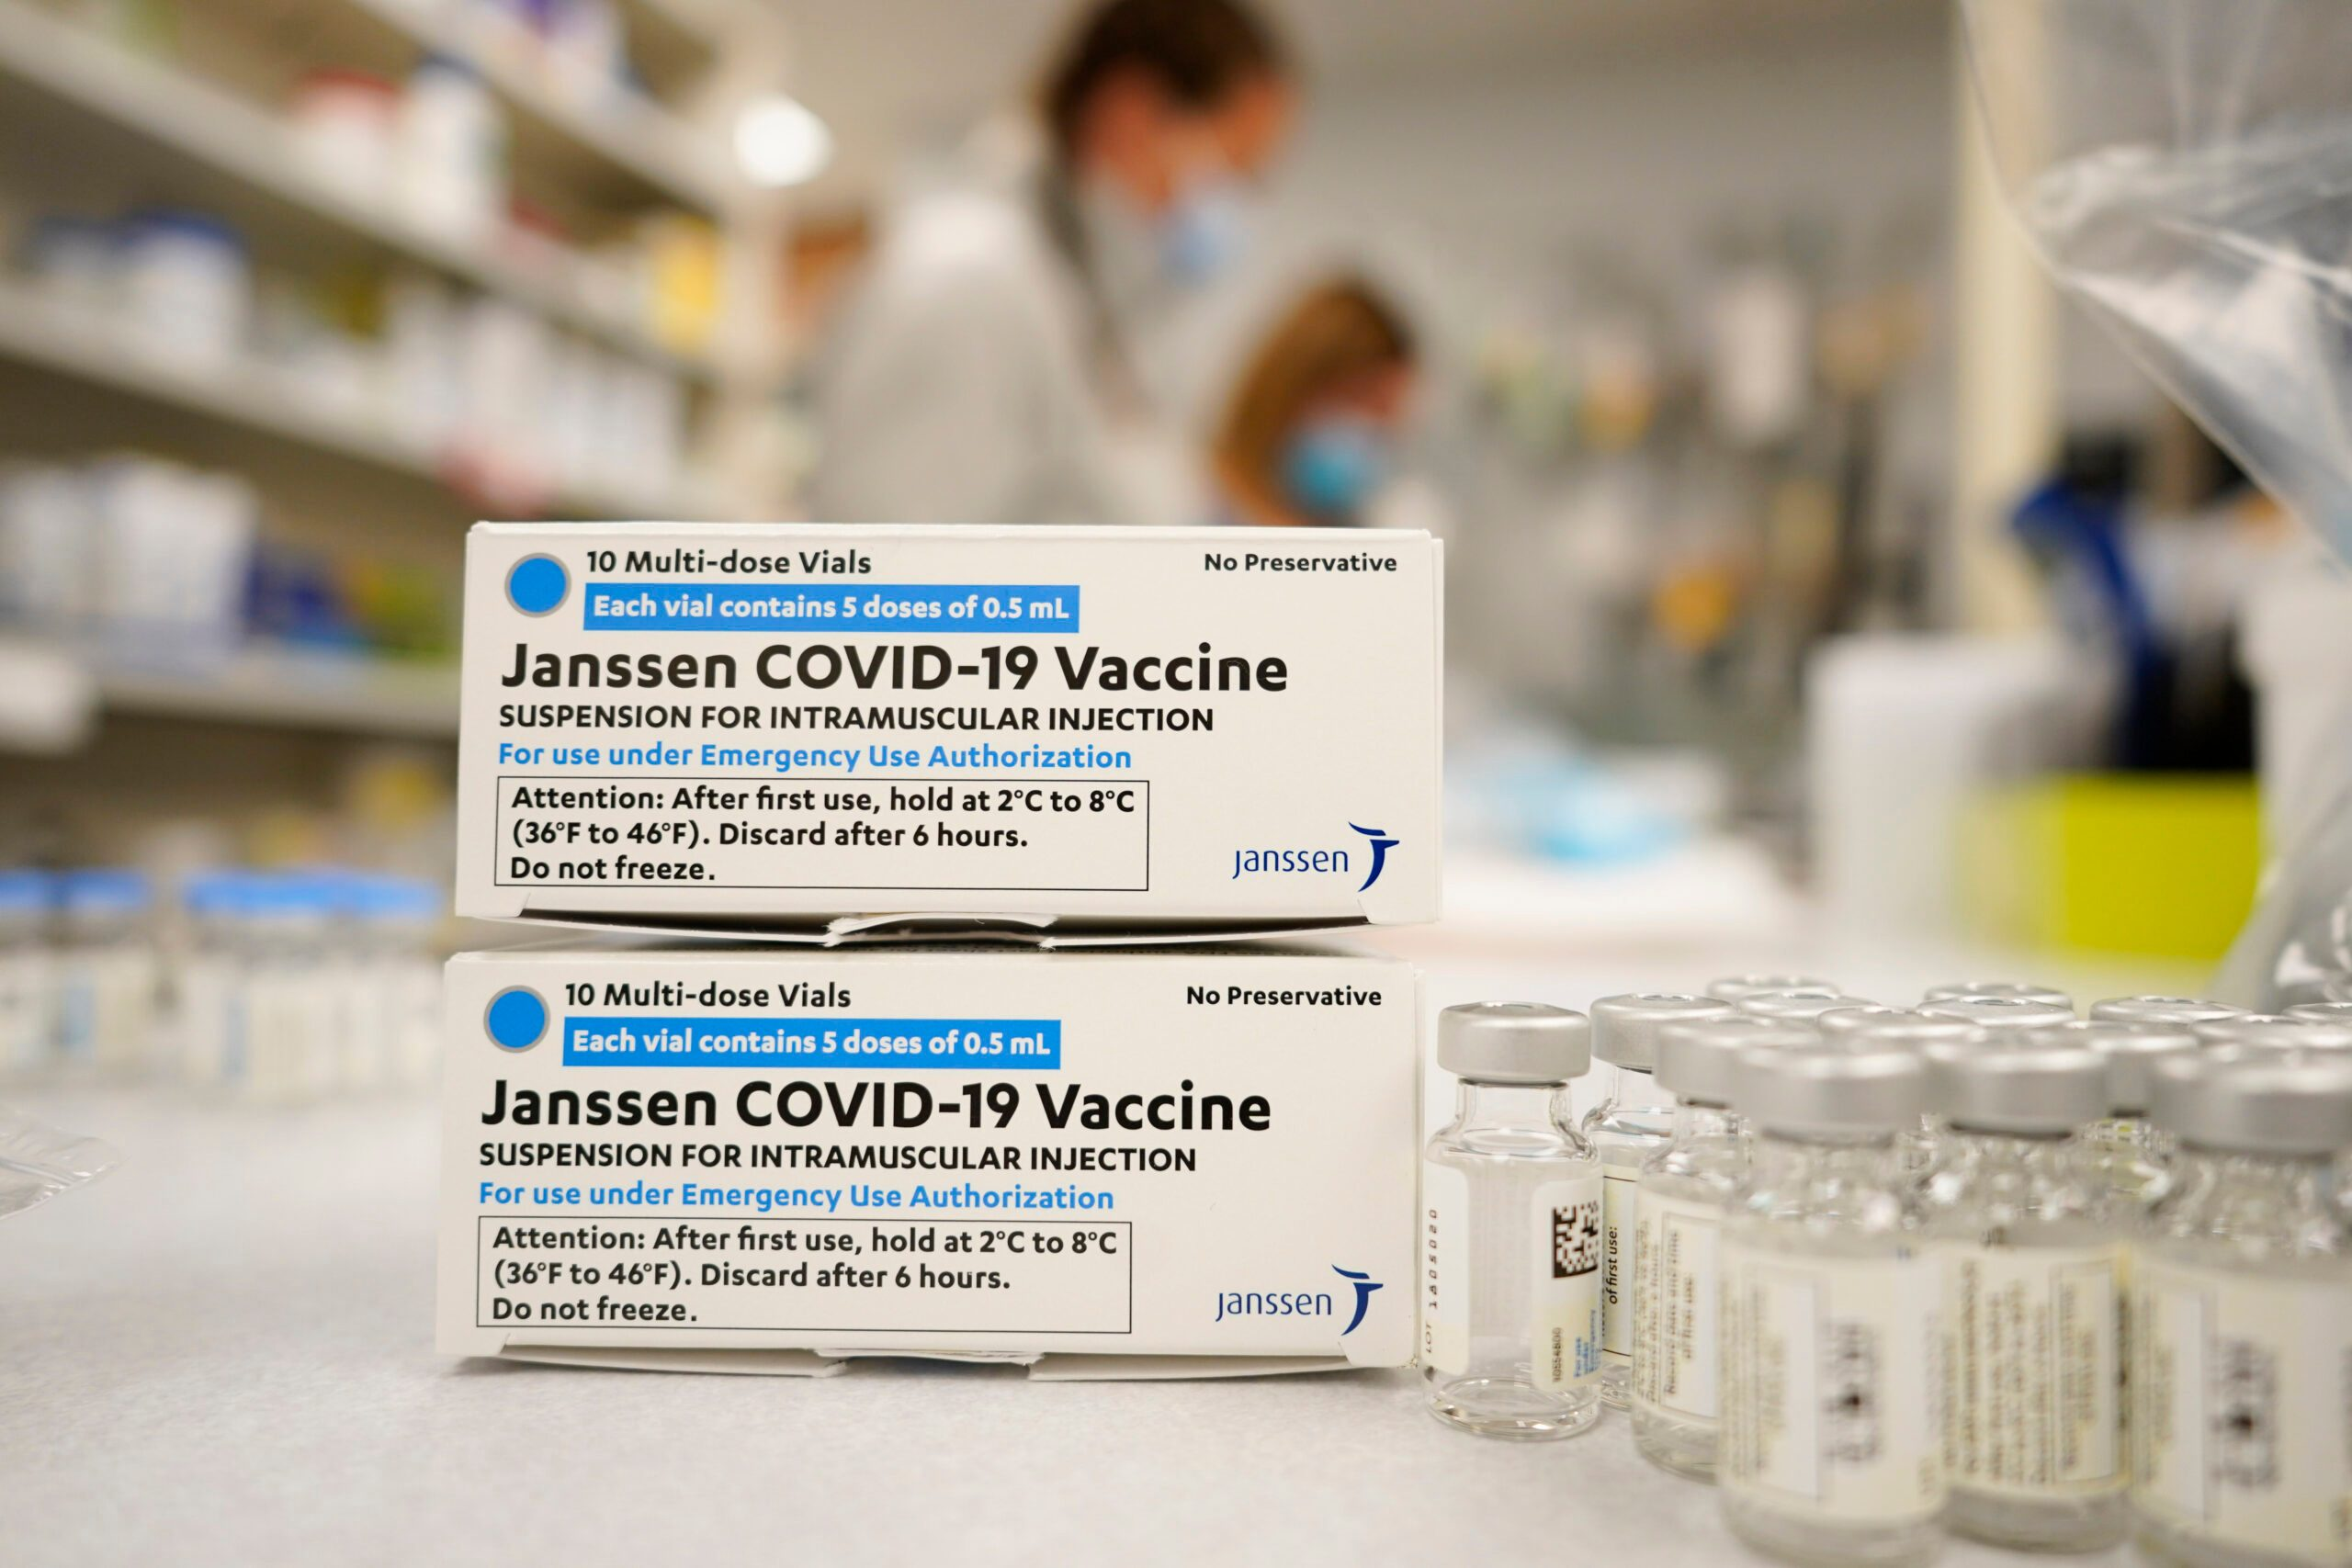 Fauci Says He Expects J&J Vaccine to Resume Later This Week - snopes